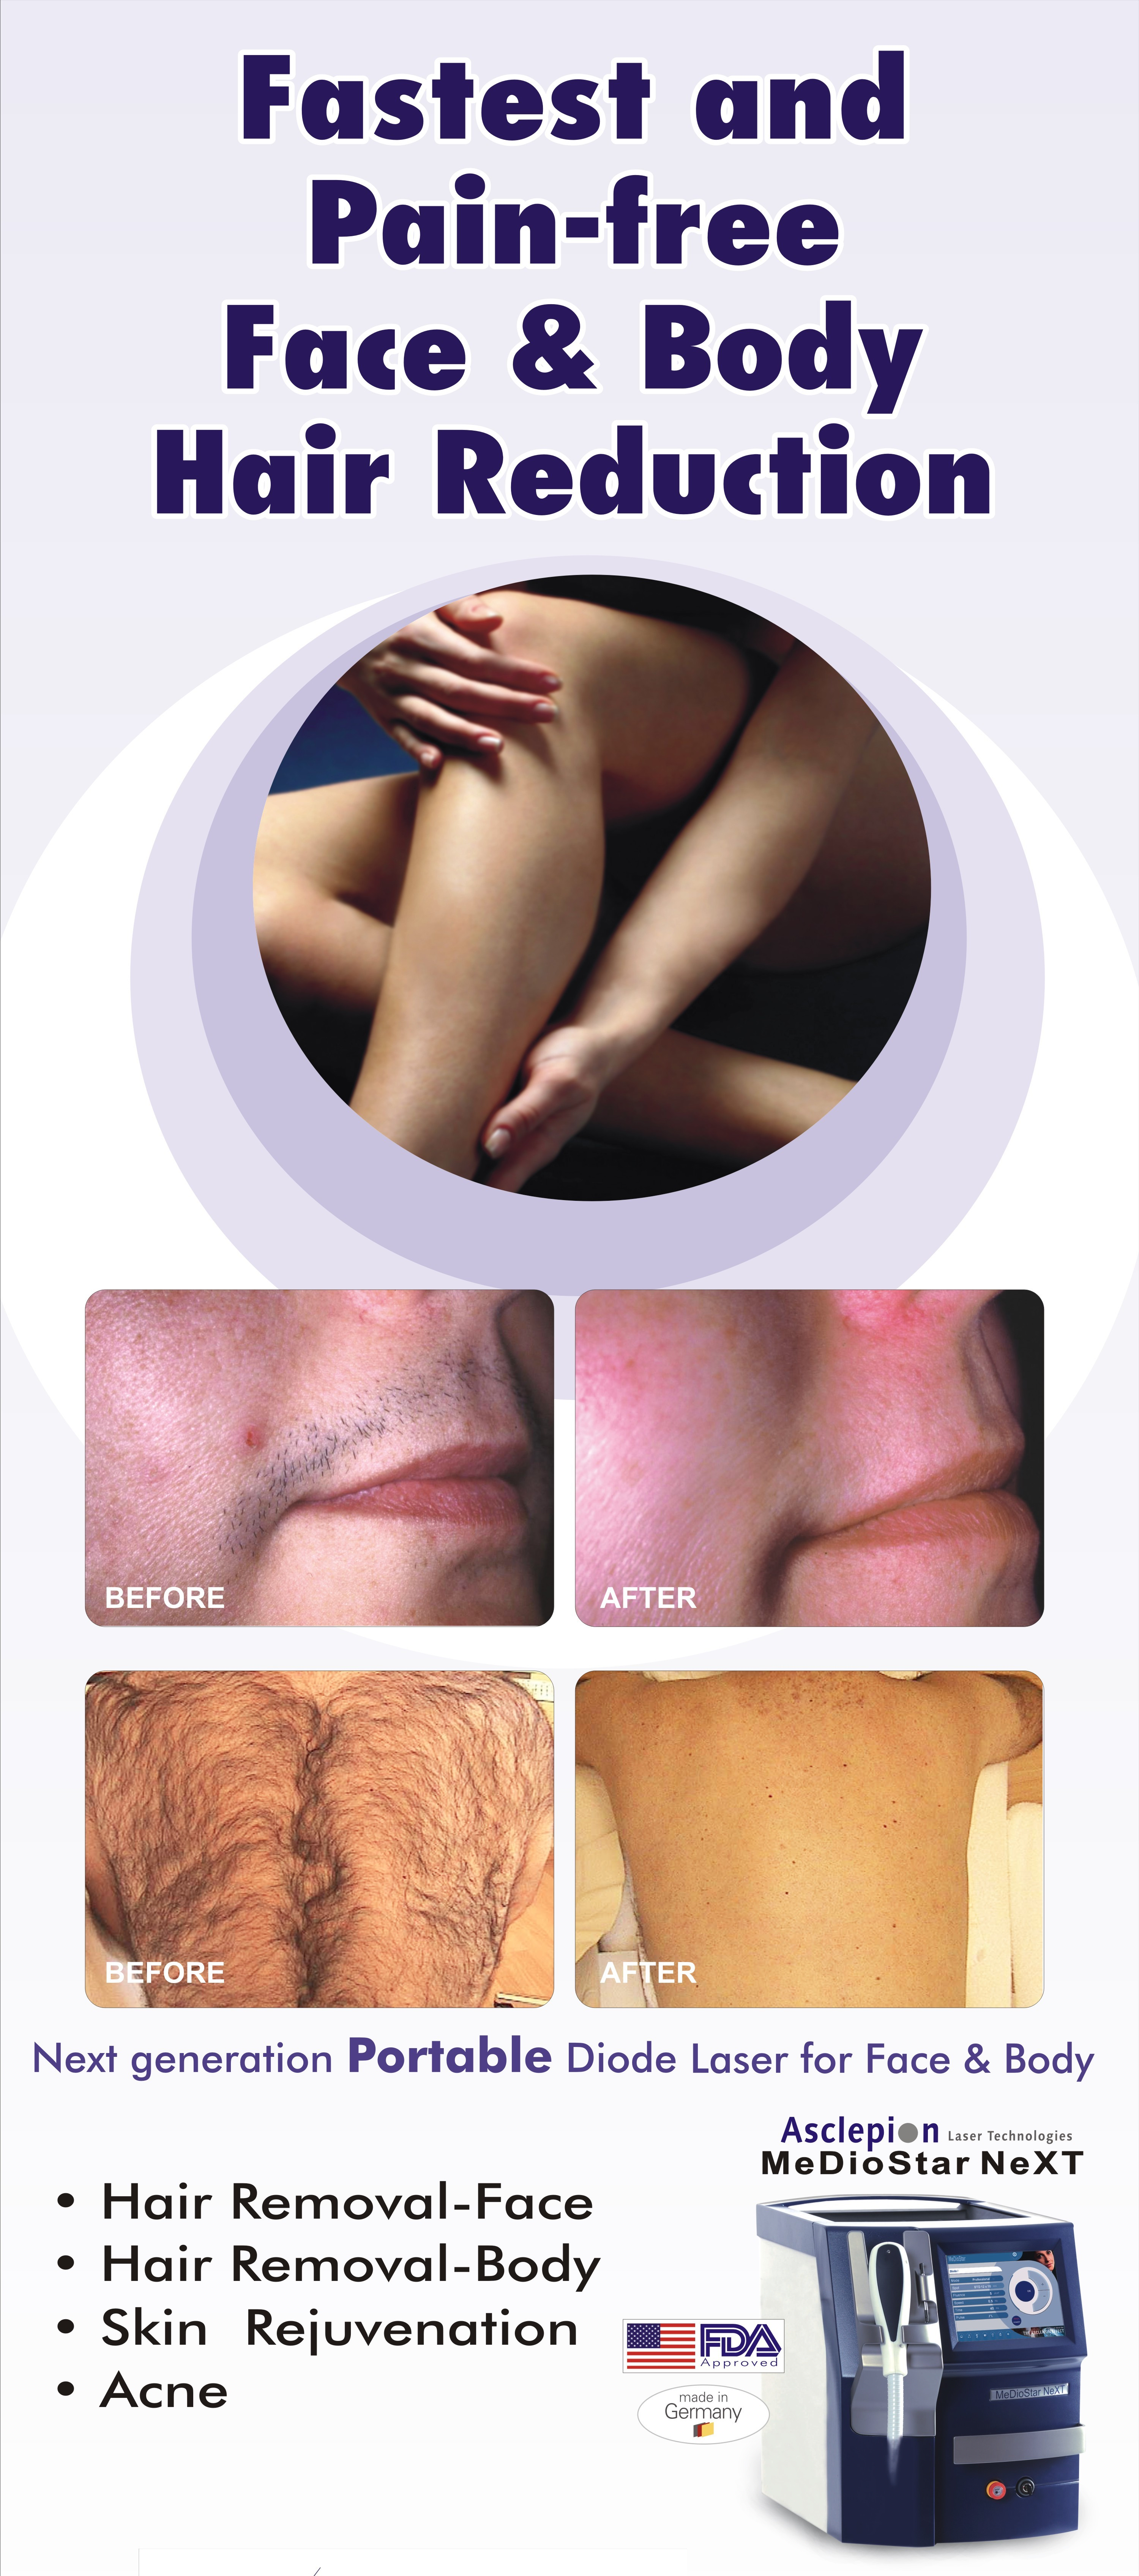 Laser hair removal is an increasingly popular non-surgical cosmetic procedure. It is a non-invasive, convenient method to reduce hair growth.